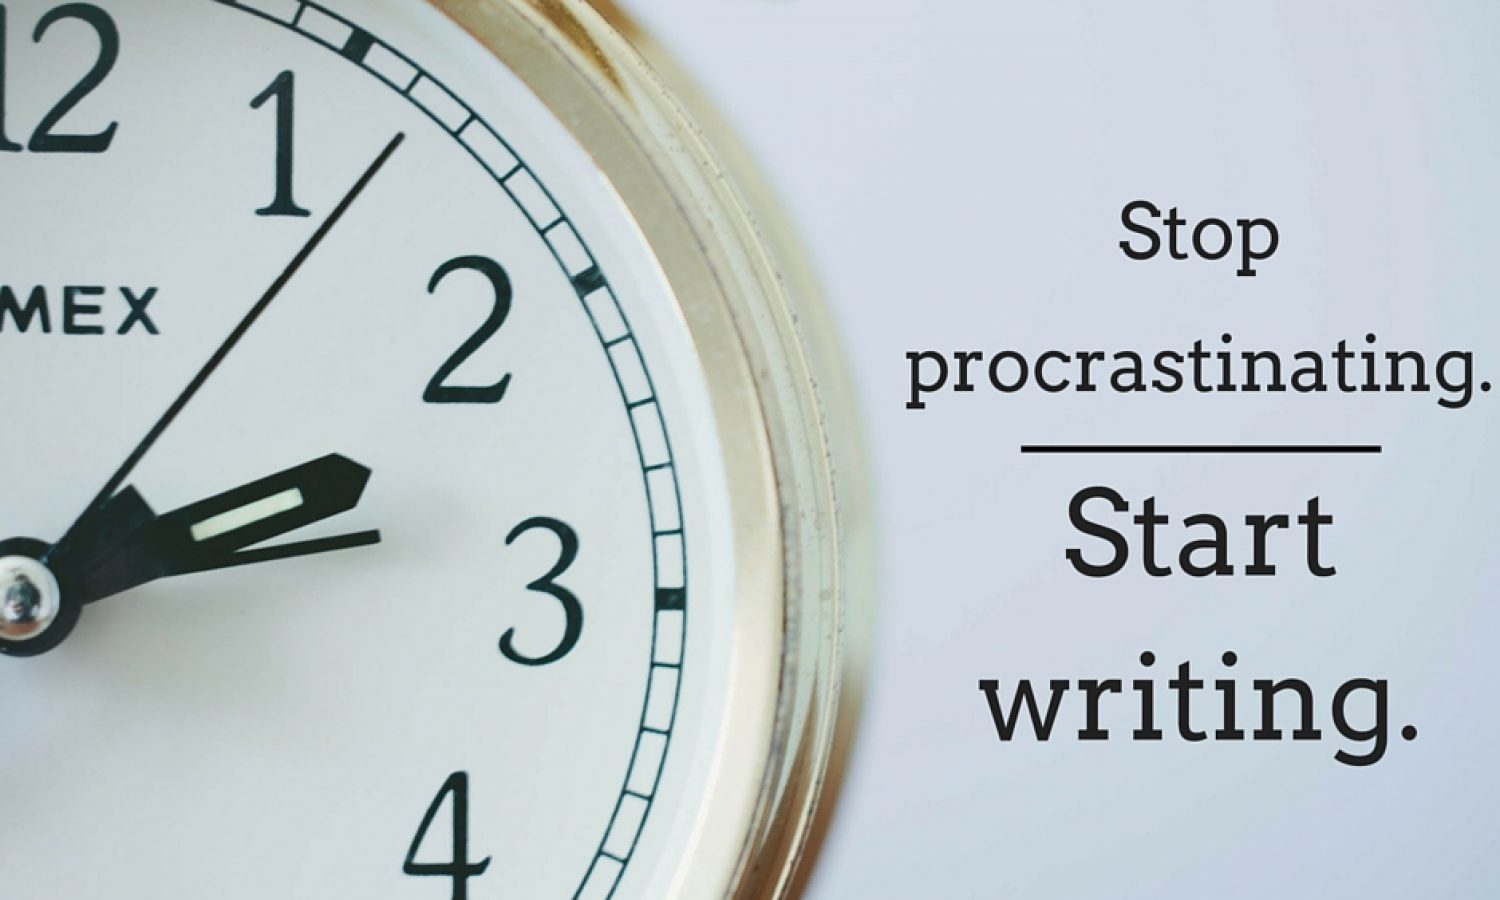 stop-procrastinating-start-writing1